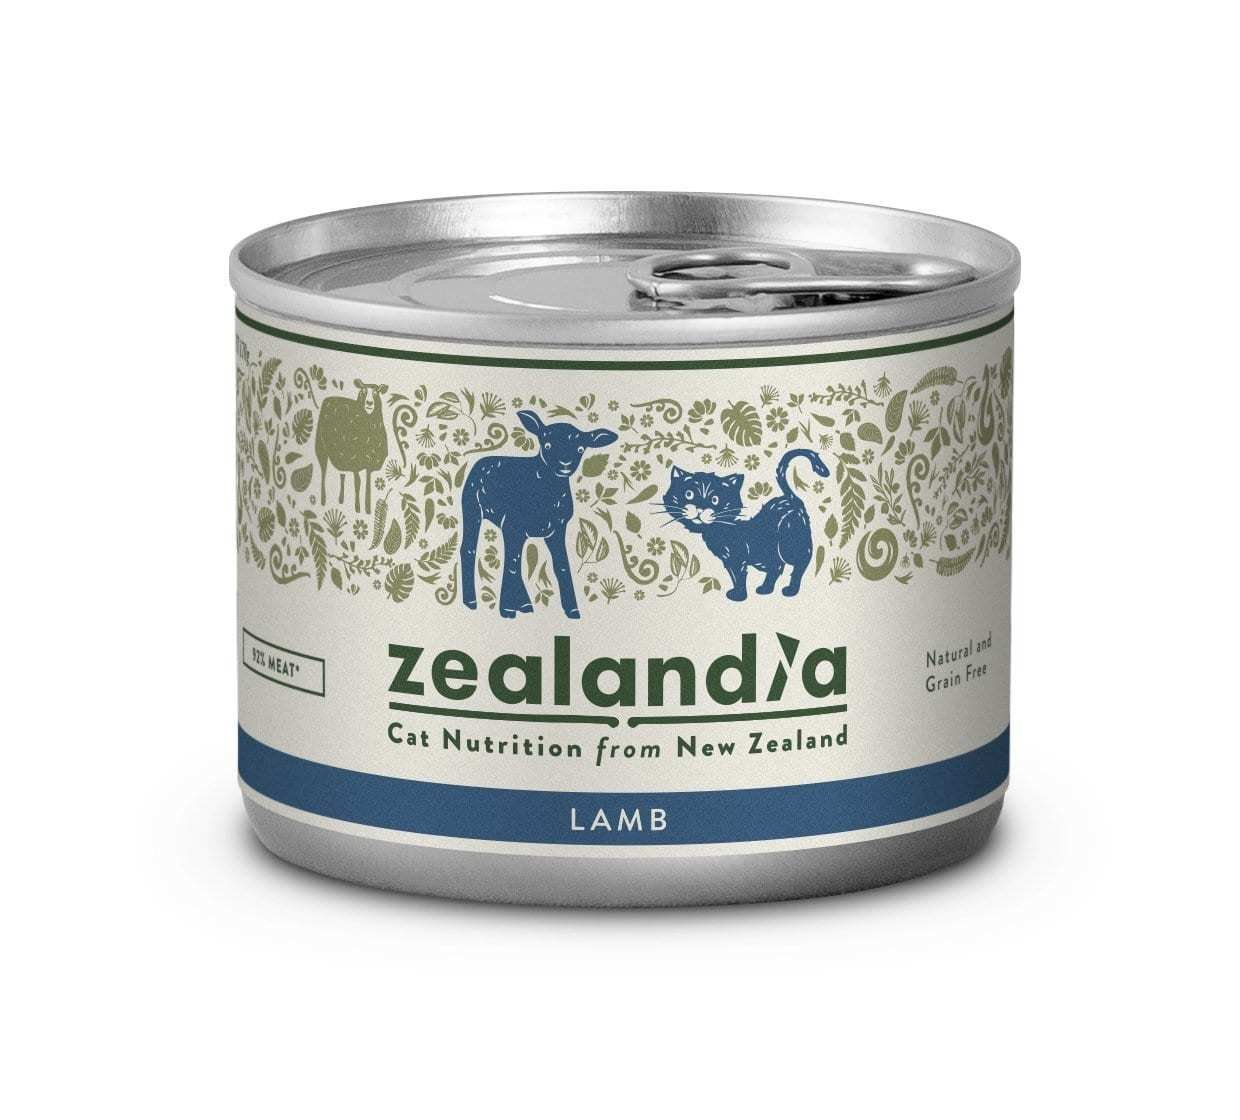 Free Range NZ Lamb 170g Tinned Cat Food zealandia-cat-free-range-nz-lamb-170g-tin